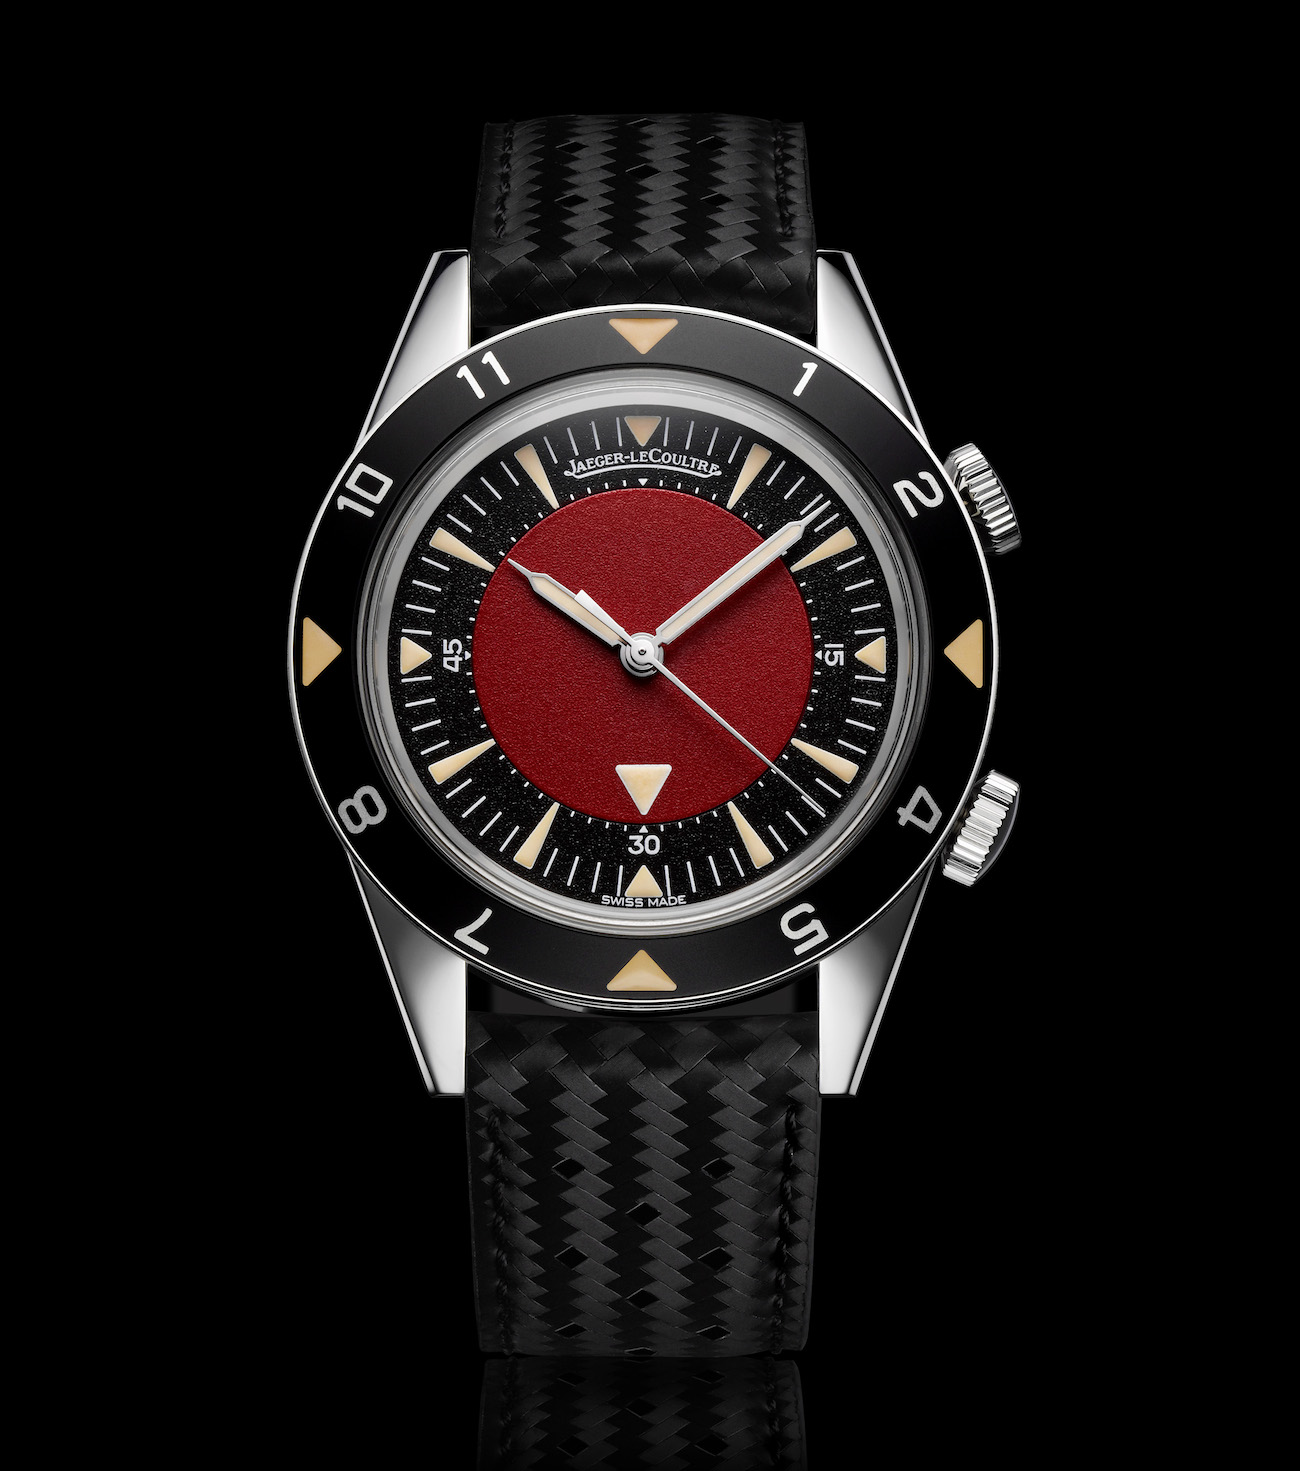 Jaeger-LeCoultre Memovox Tribute to Deep Sea (RED) - FN.jpg